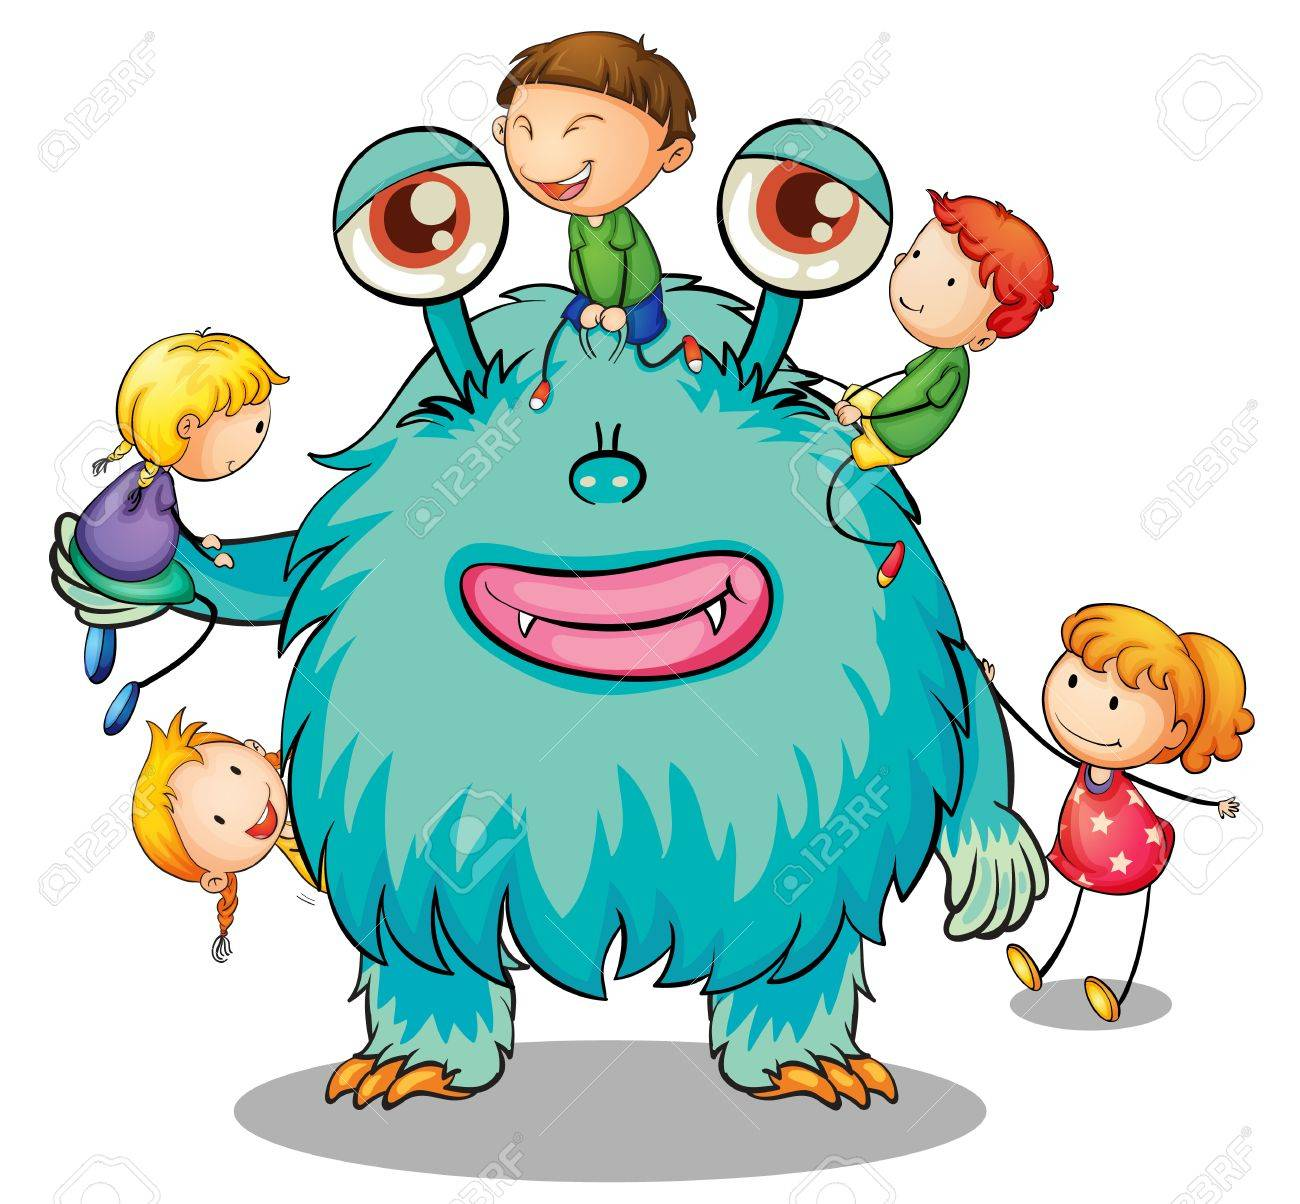 Uncategorized Monster Pictures For Kids illustration of kids playing with monster on white royalty free stock vector 15249997